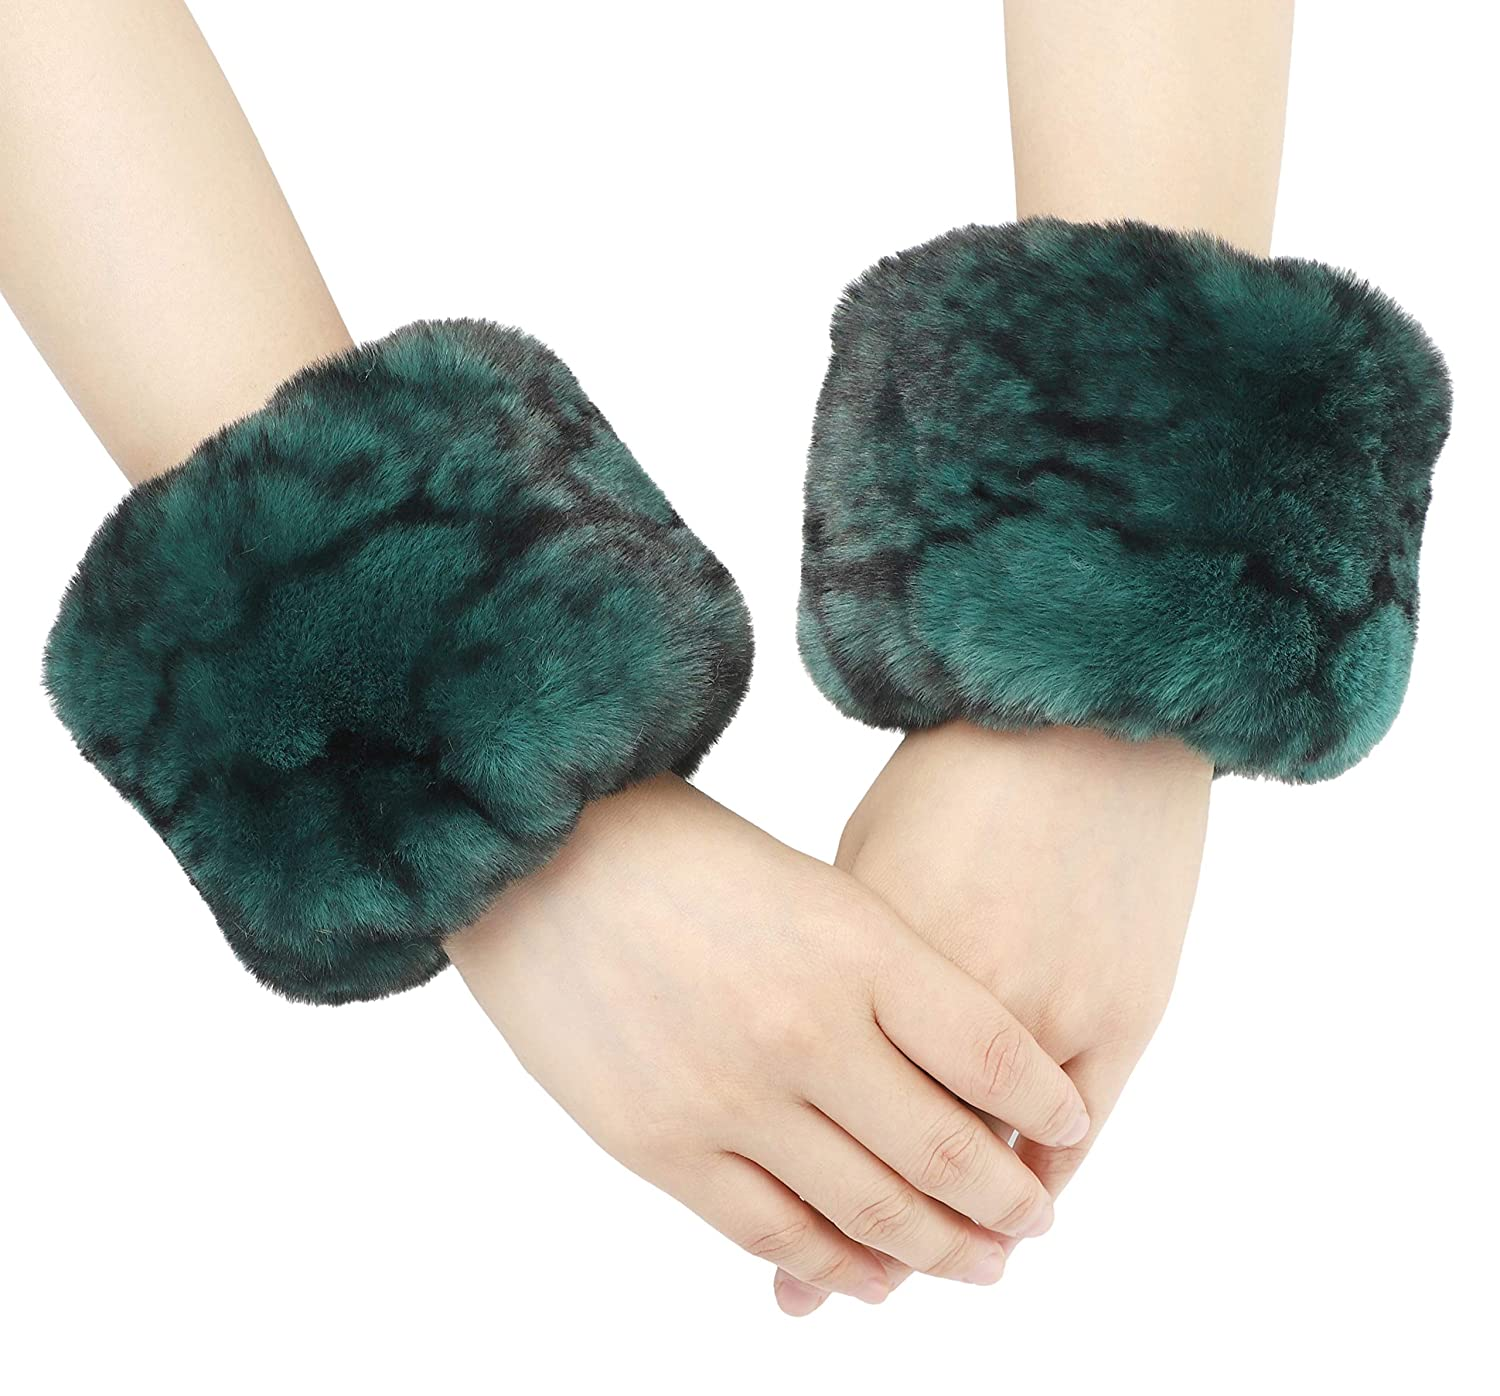 La Carrie Womens Snakeskin Print Faux Fur Wrist Cuffs,Winter Fox Furry Bands Arm Warmer